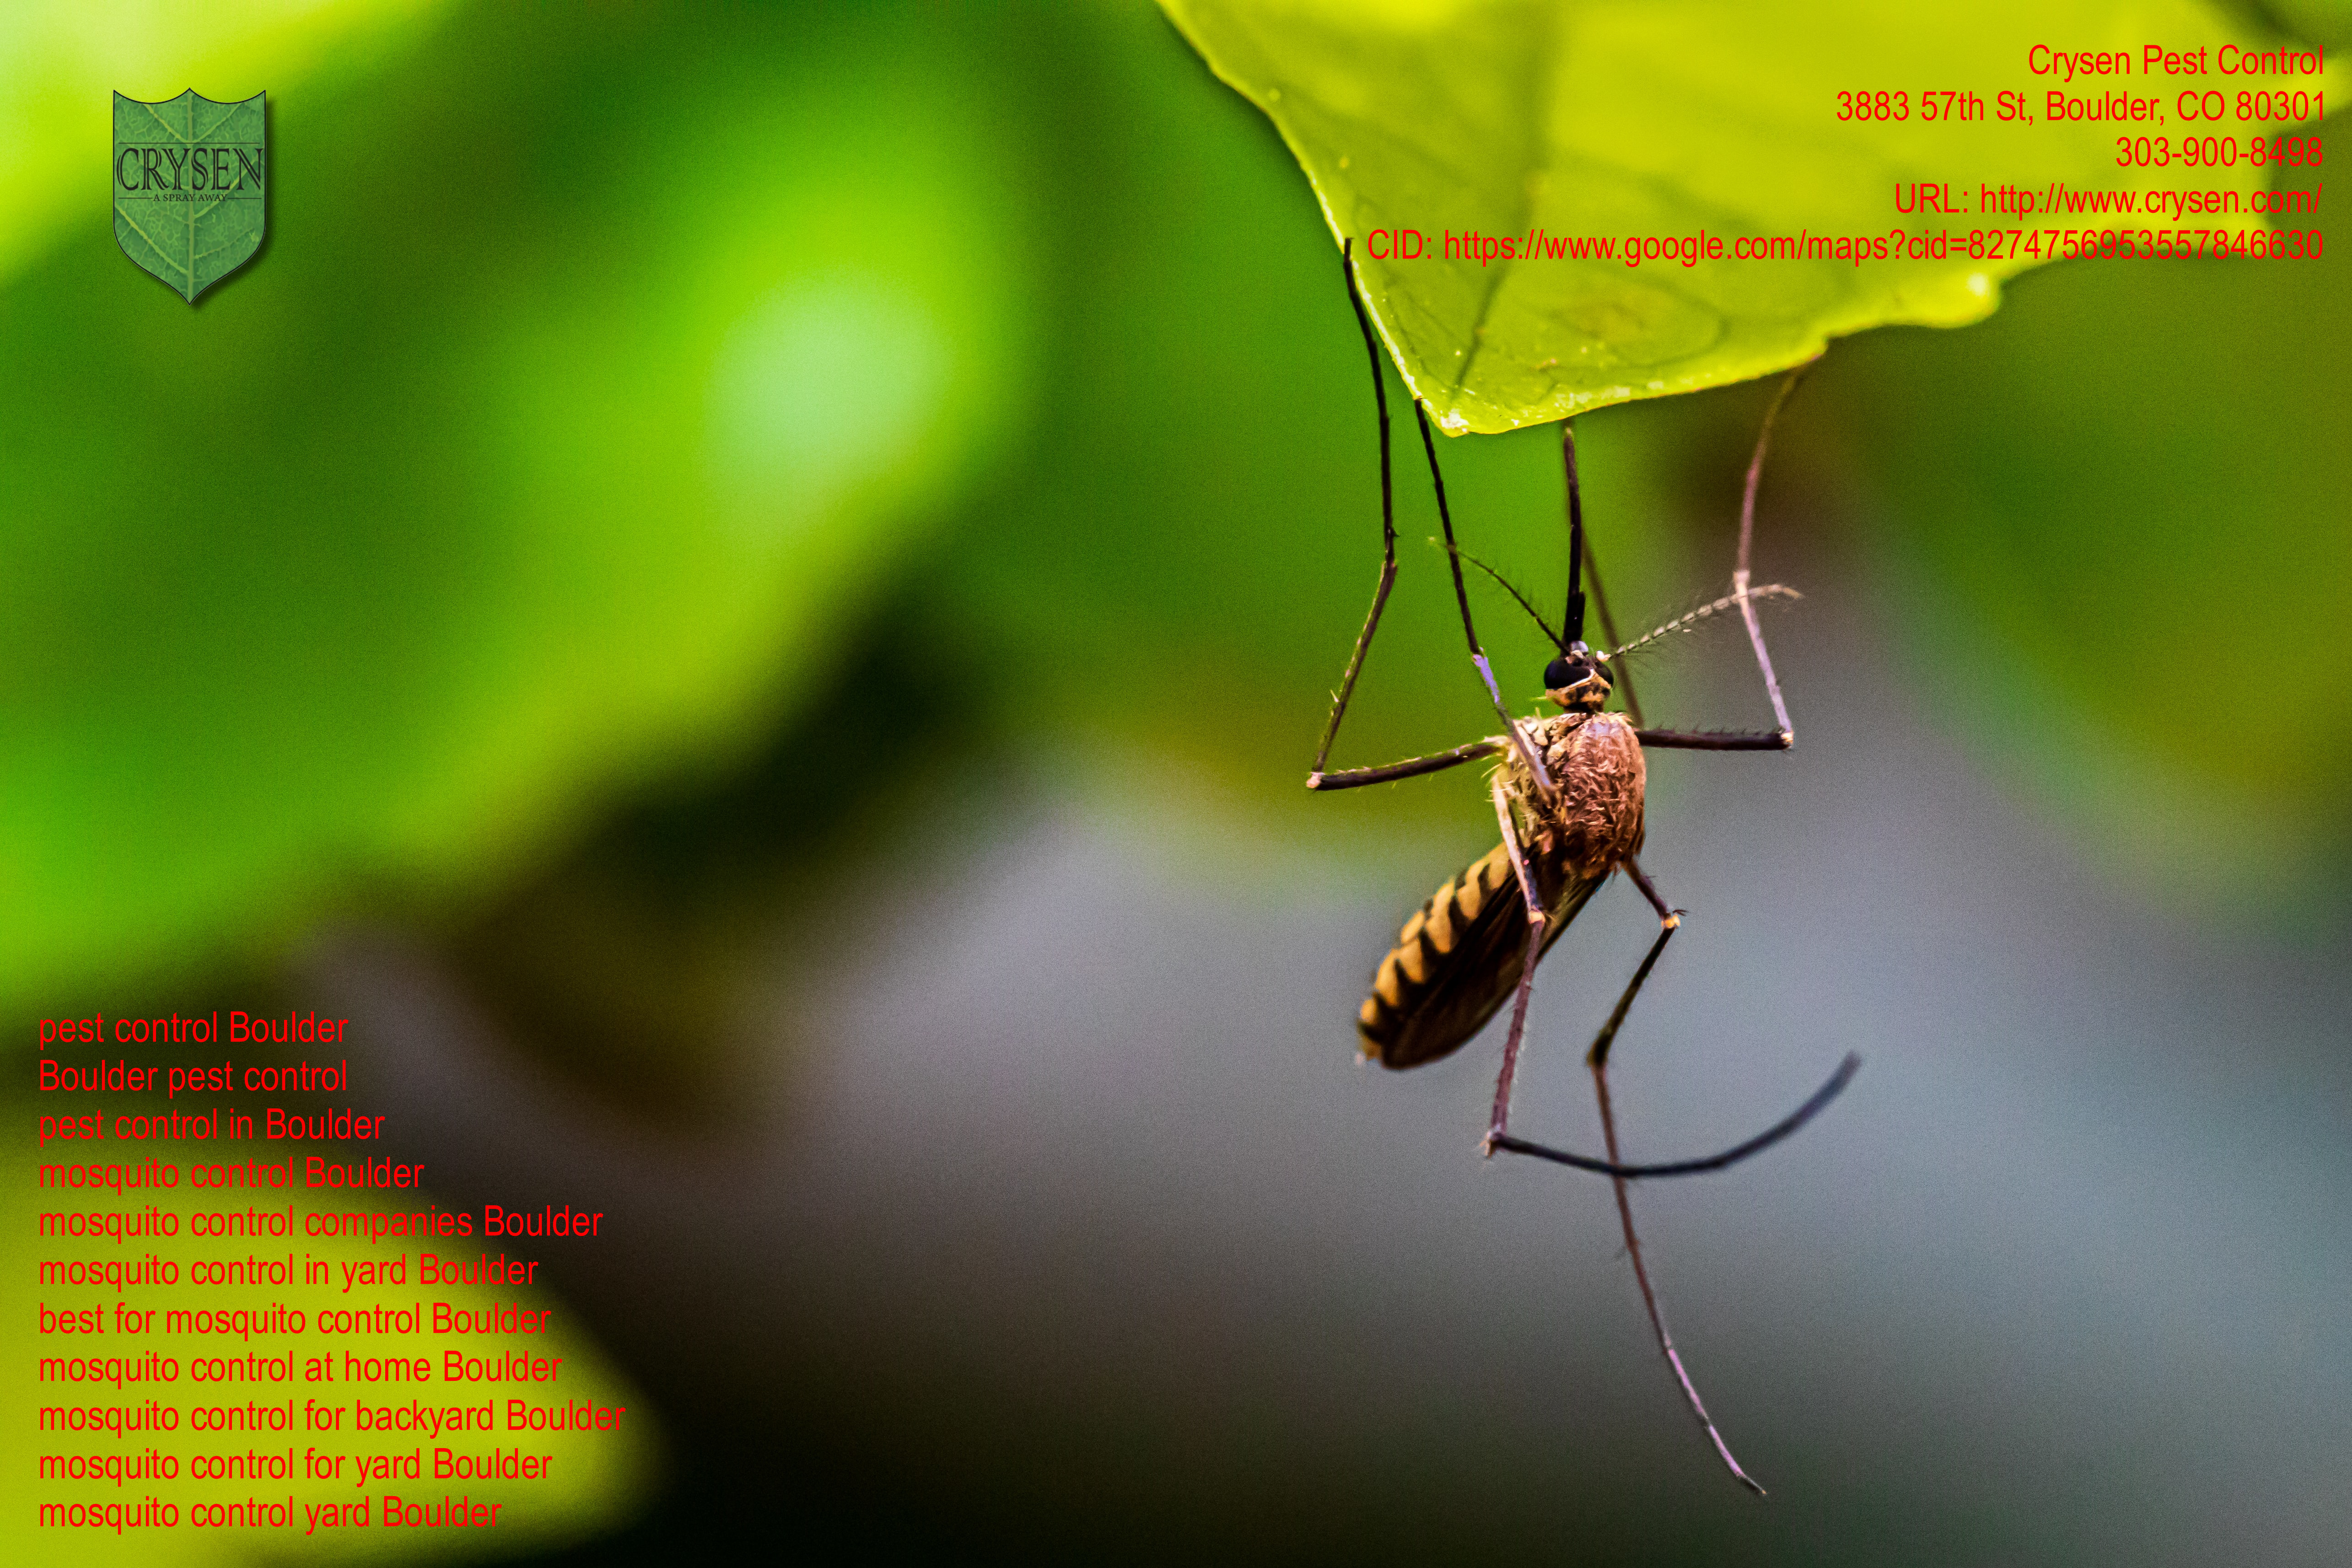 Crysen Pest Control Highlight The Benefits Of Professional Pest Control Services